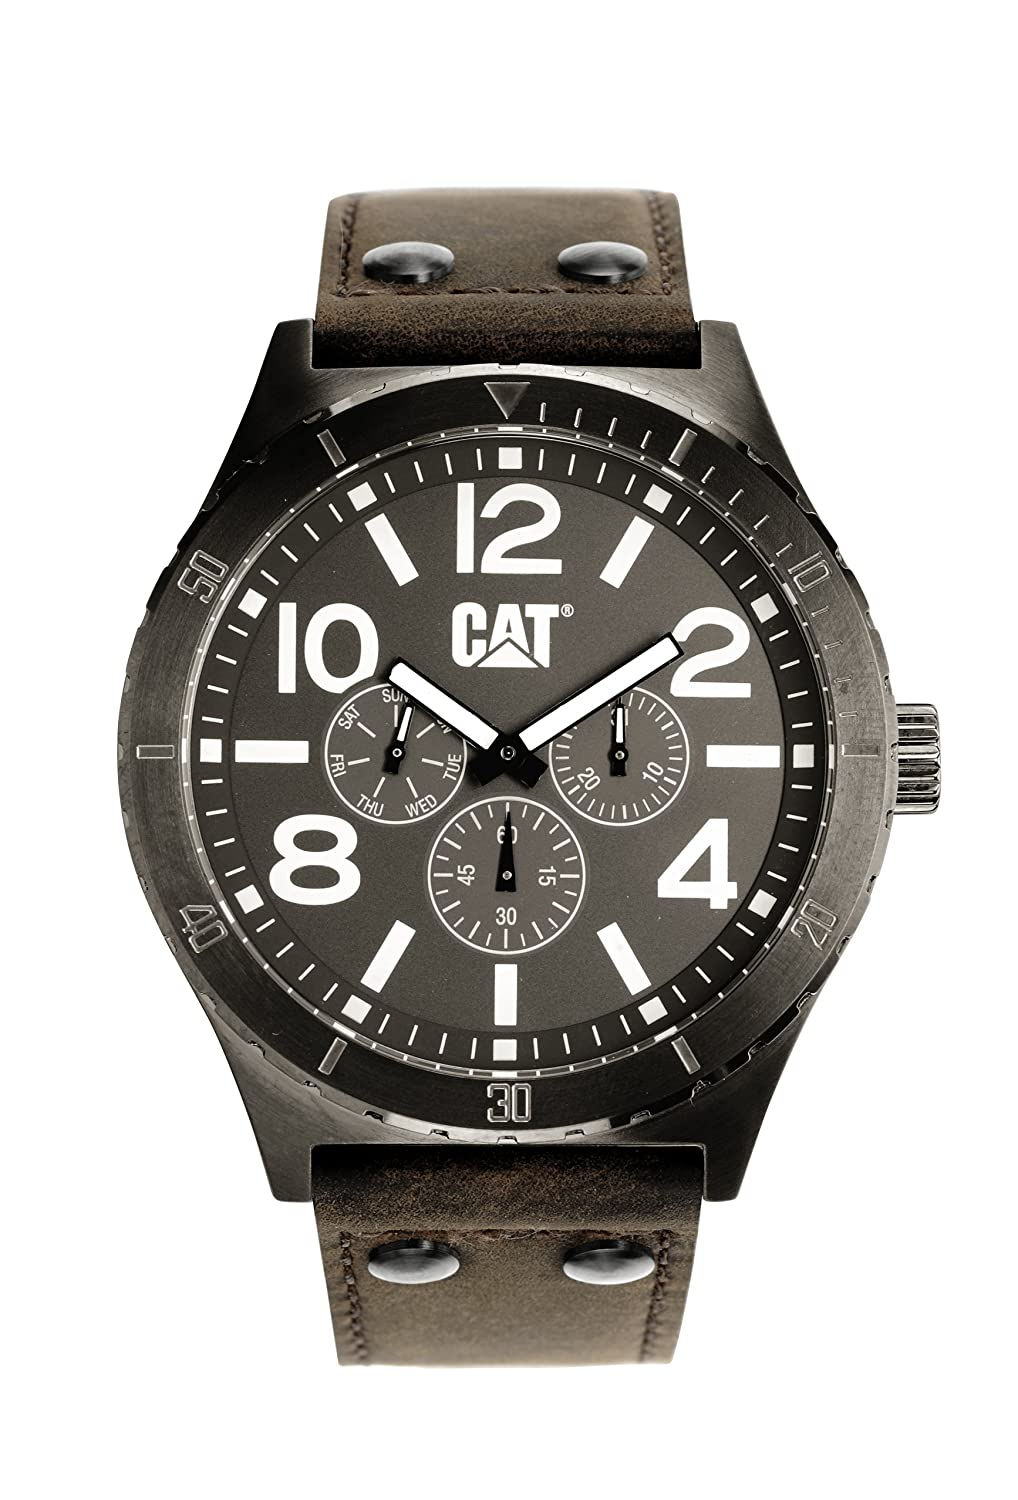 Amazon.com: CAT WATCHES Mens NI15935535 Camden Analog Watch: CAT WATCHES: Watches